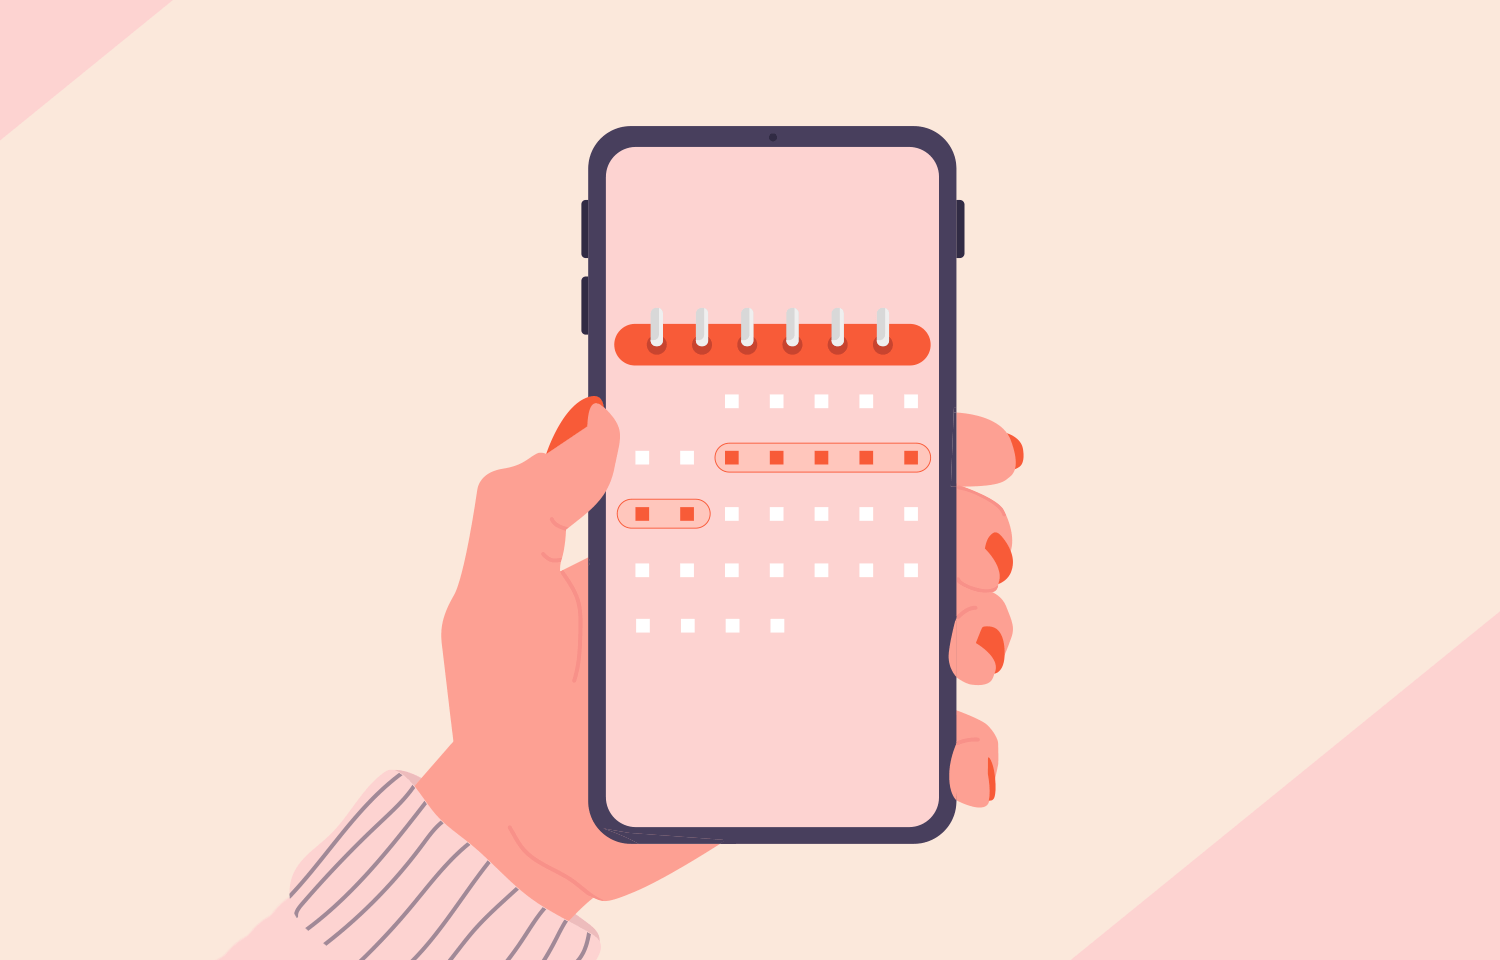 Awesome calendar app designs and how to make your own